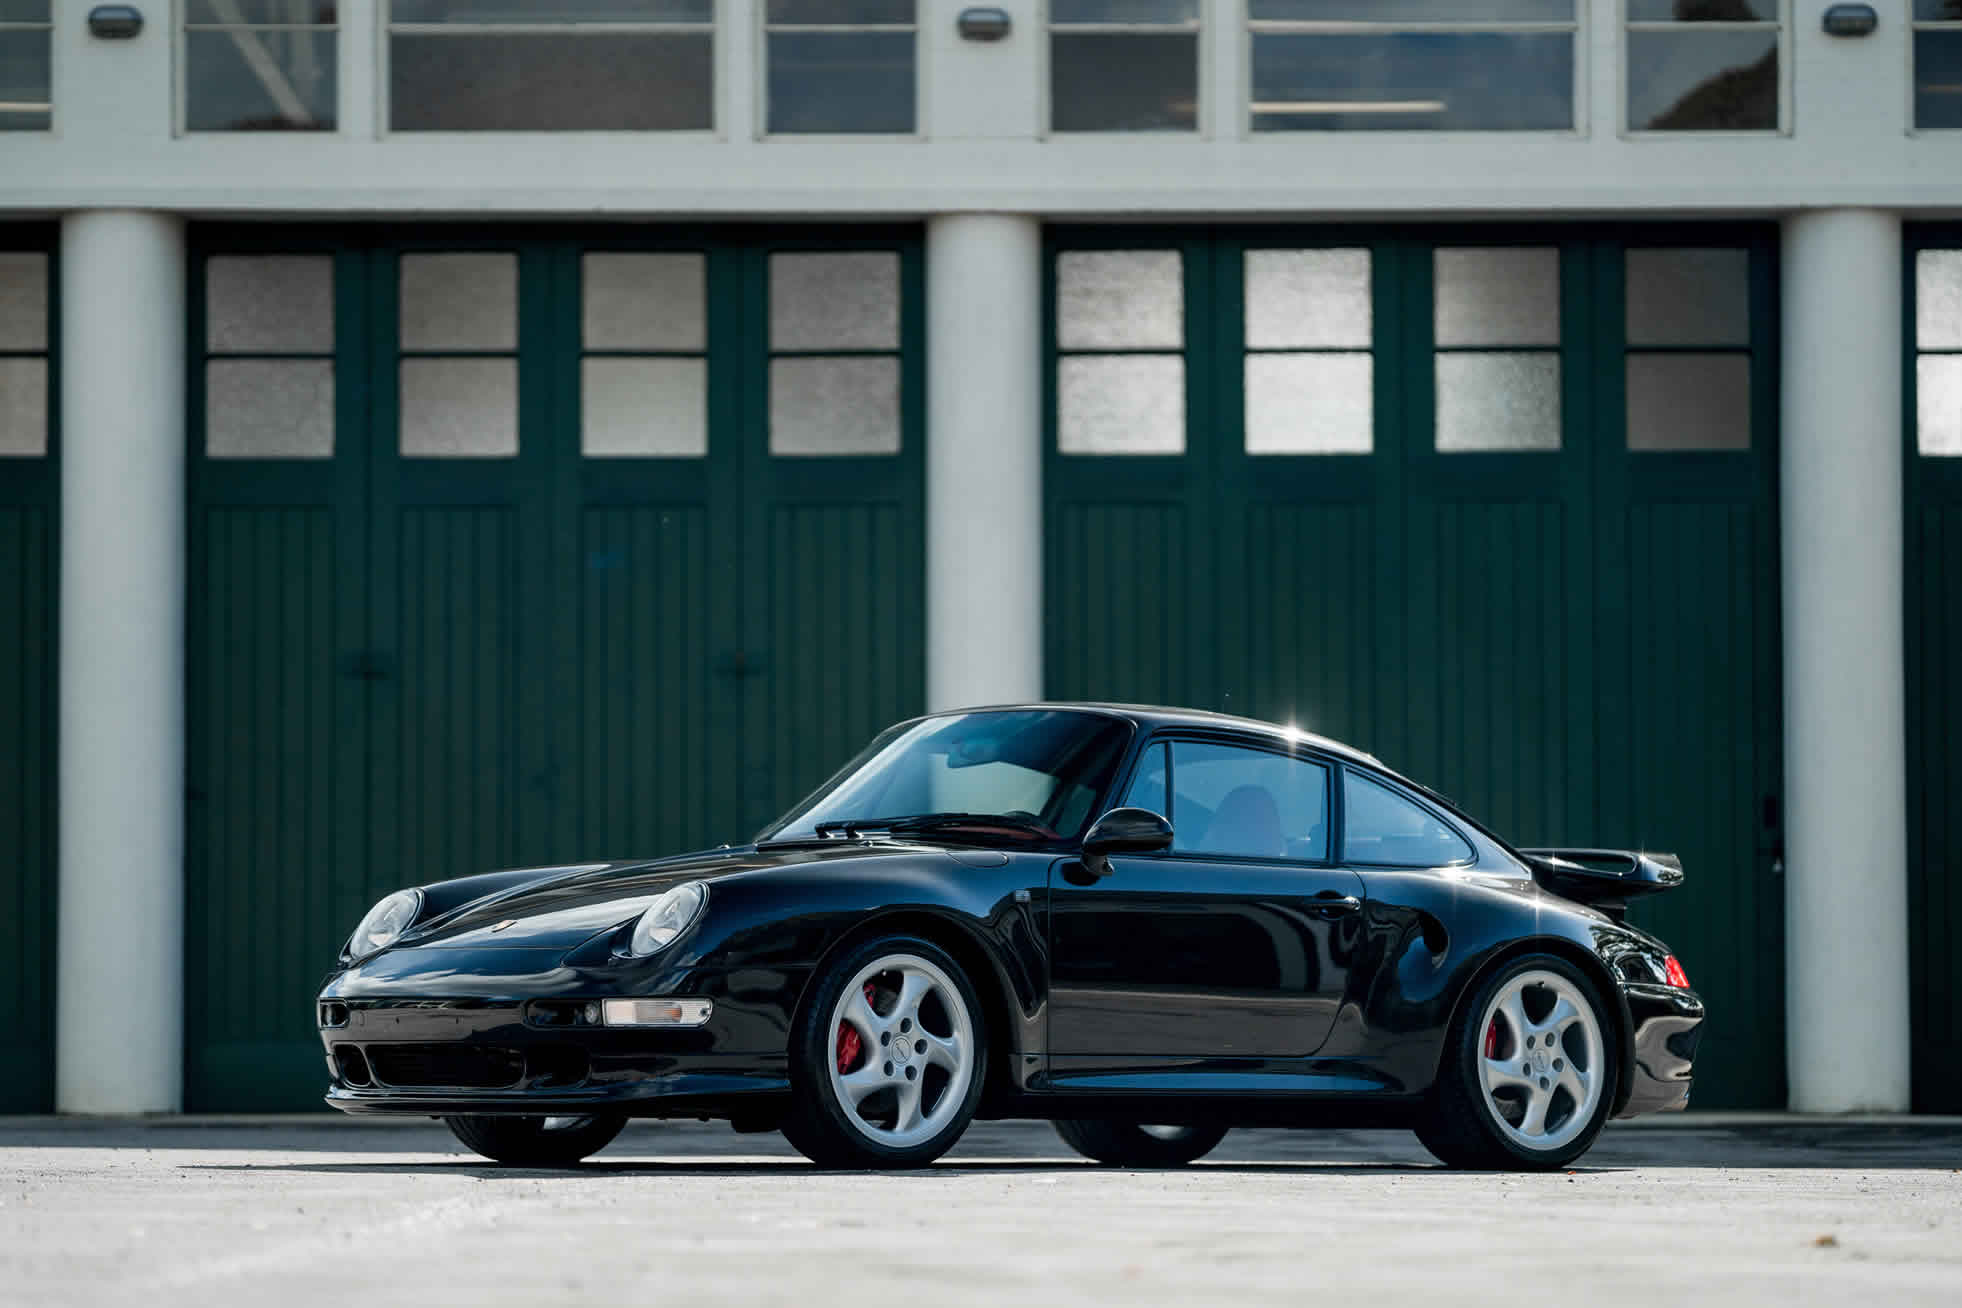 For sale 1998 PORSCHE 993 Turbo WLS II. Sports